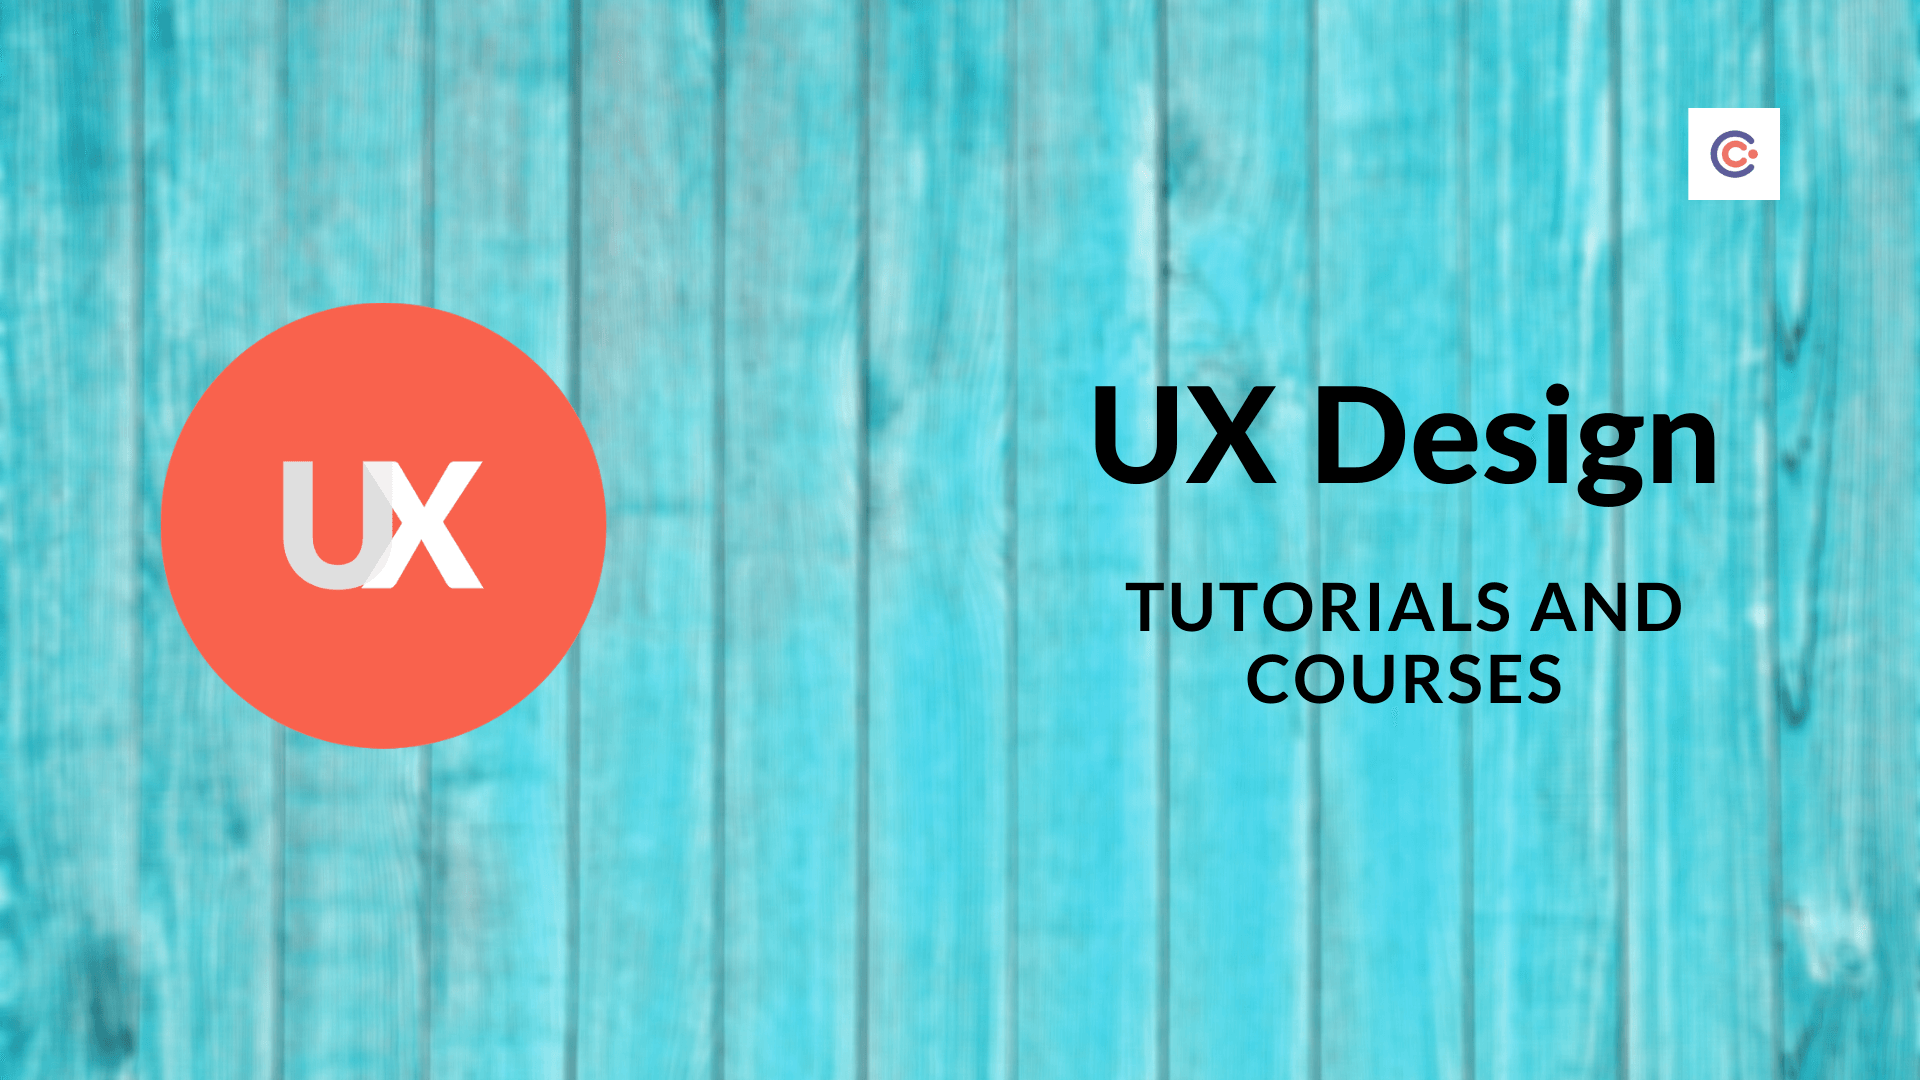 13 Best UX Design Tutorials & Courses - Learn UX Design Online